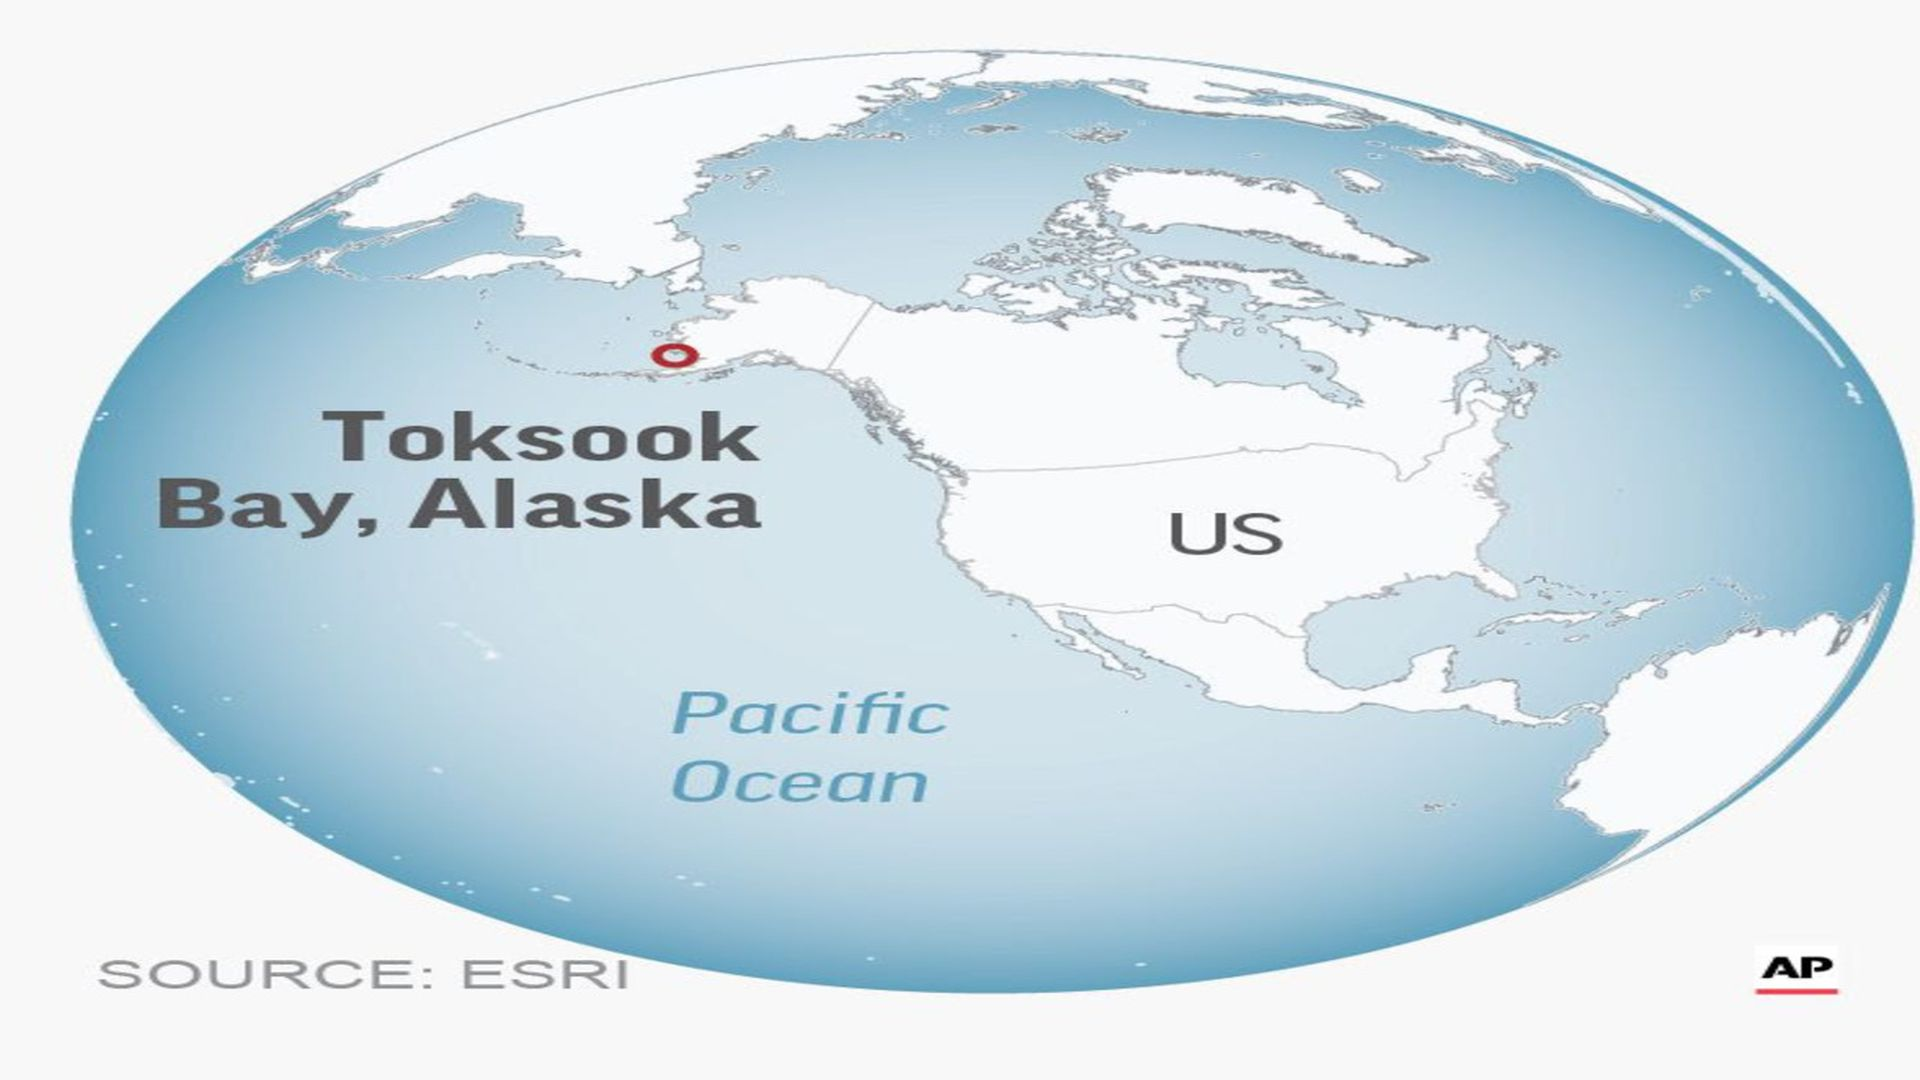 A map showing tooksook bay